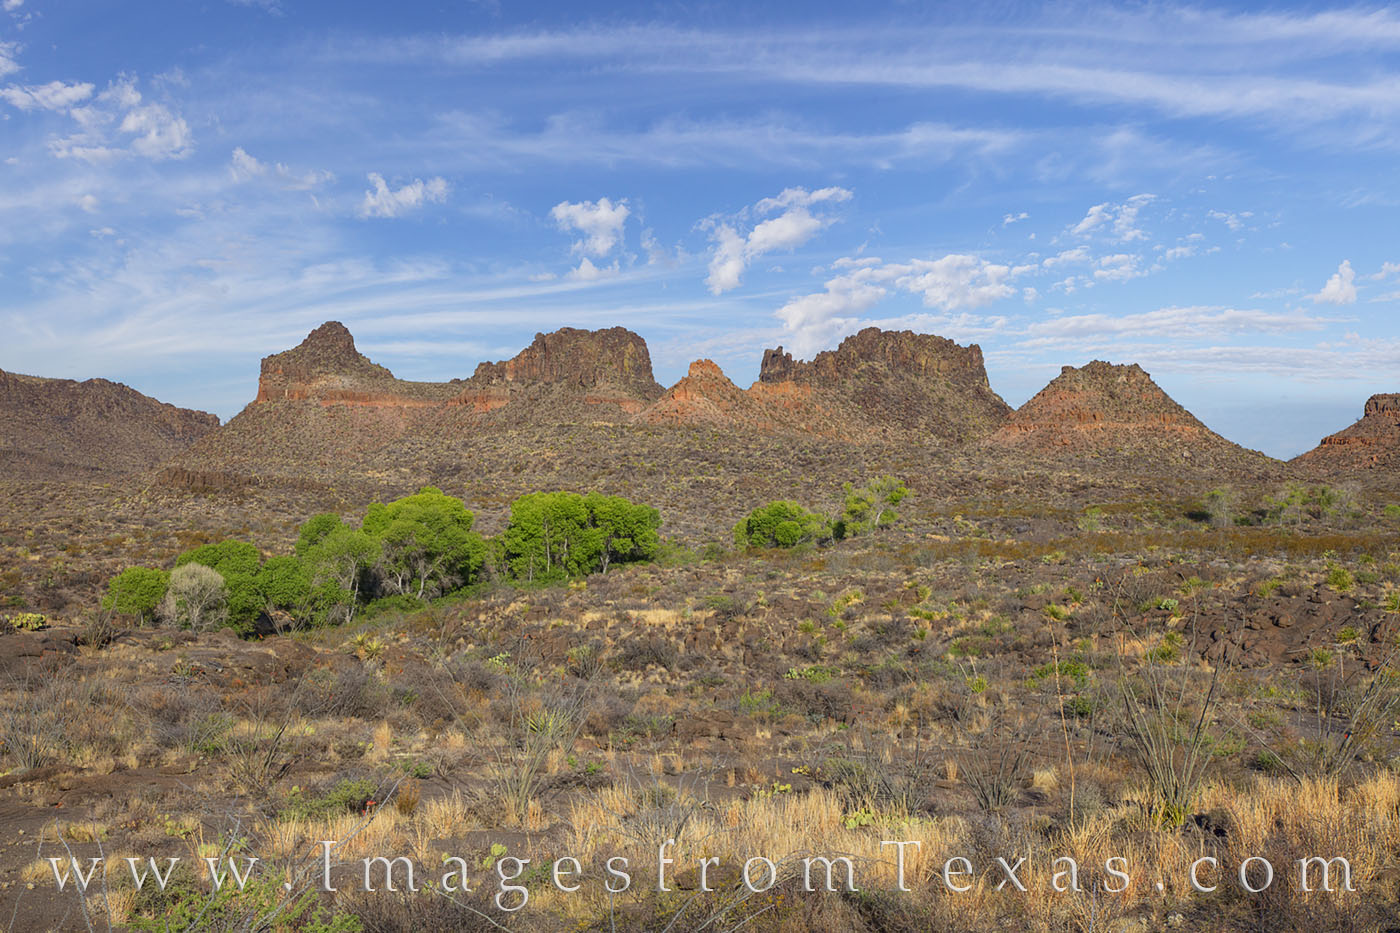 fresno rim trailhead, hiking, big bend ranch, hiking texas, photo